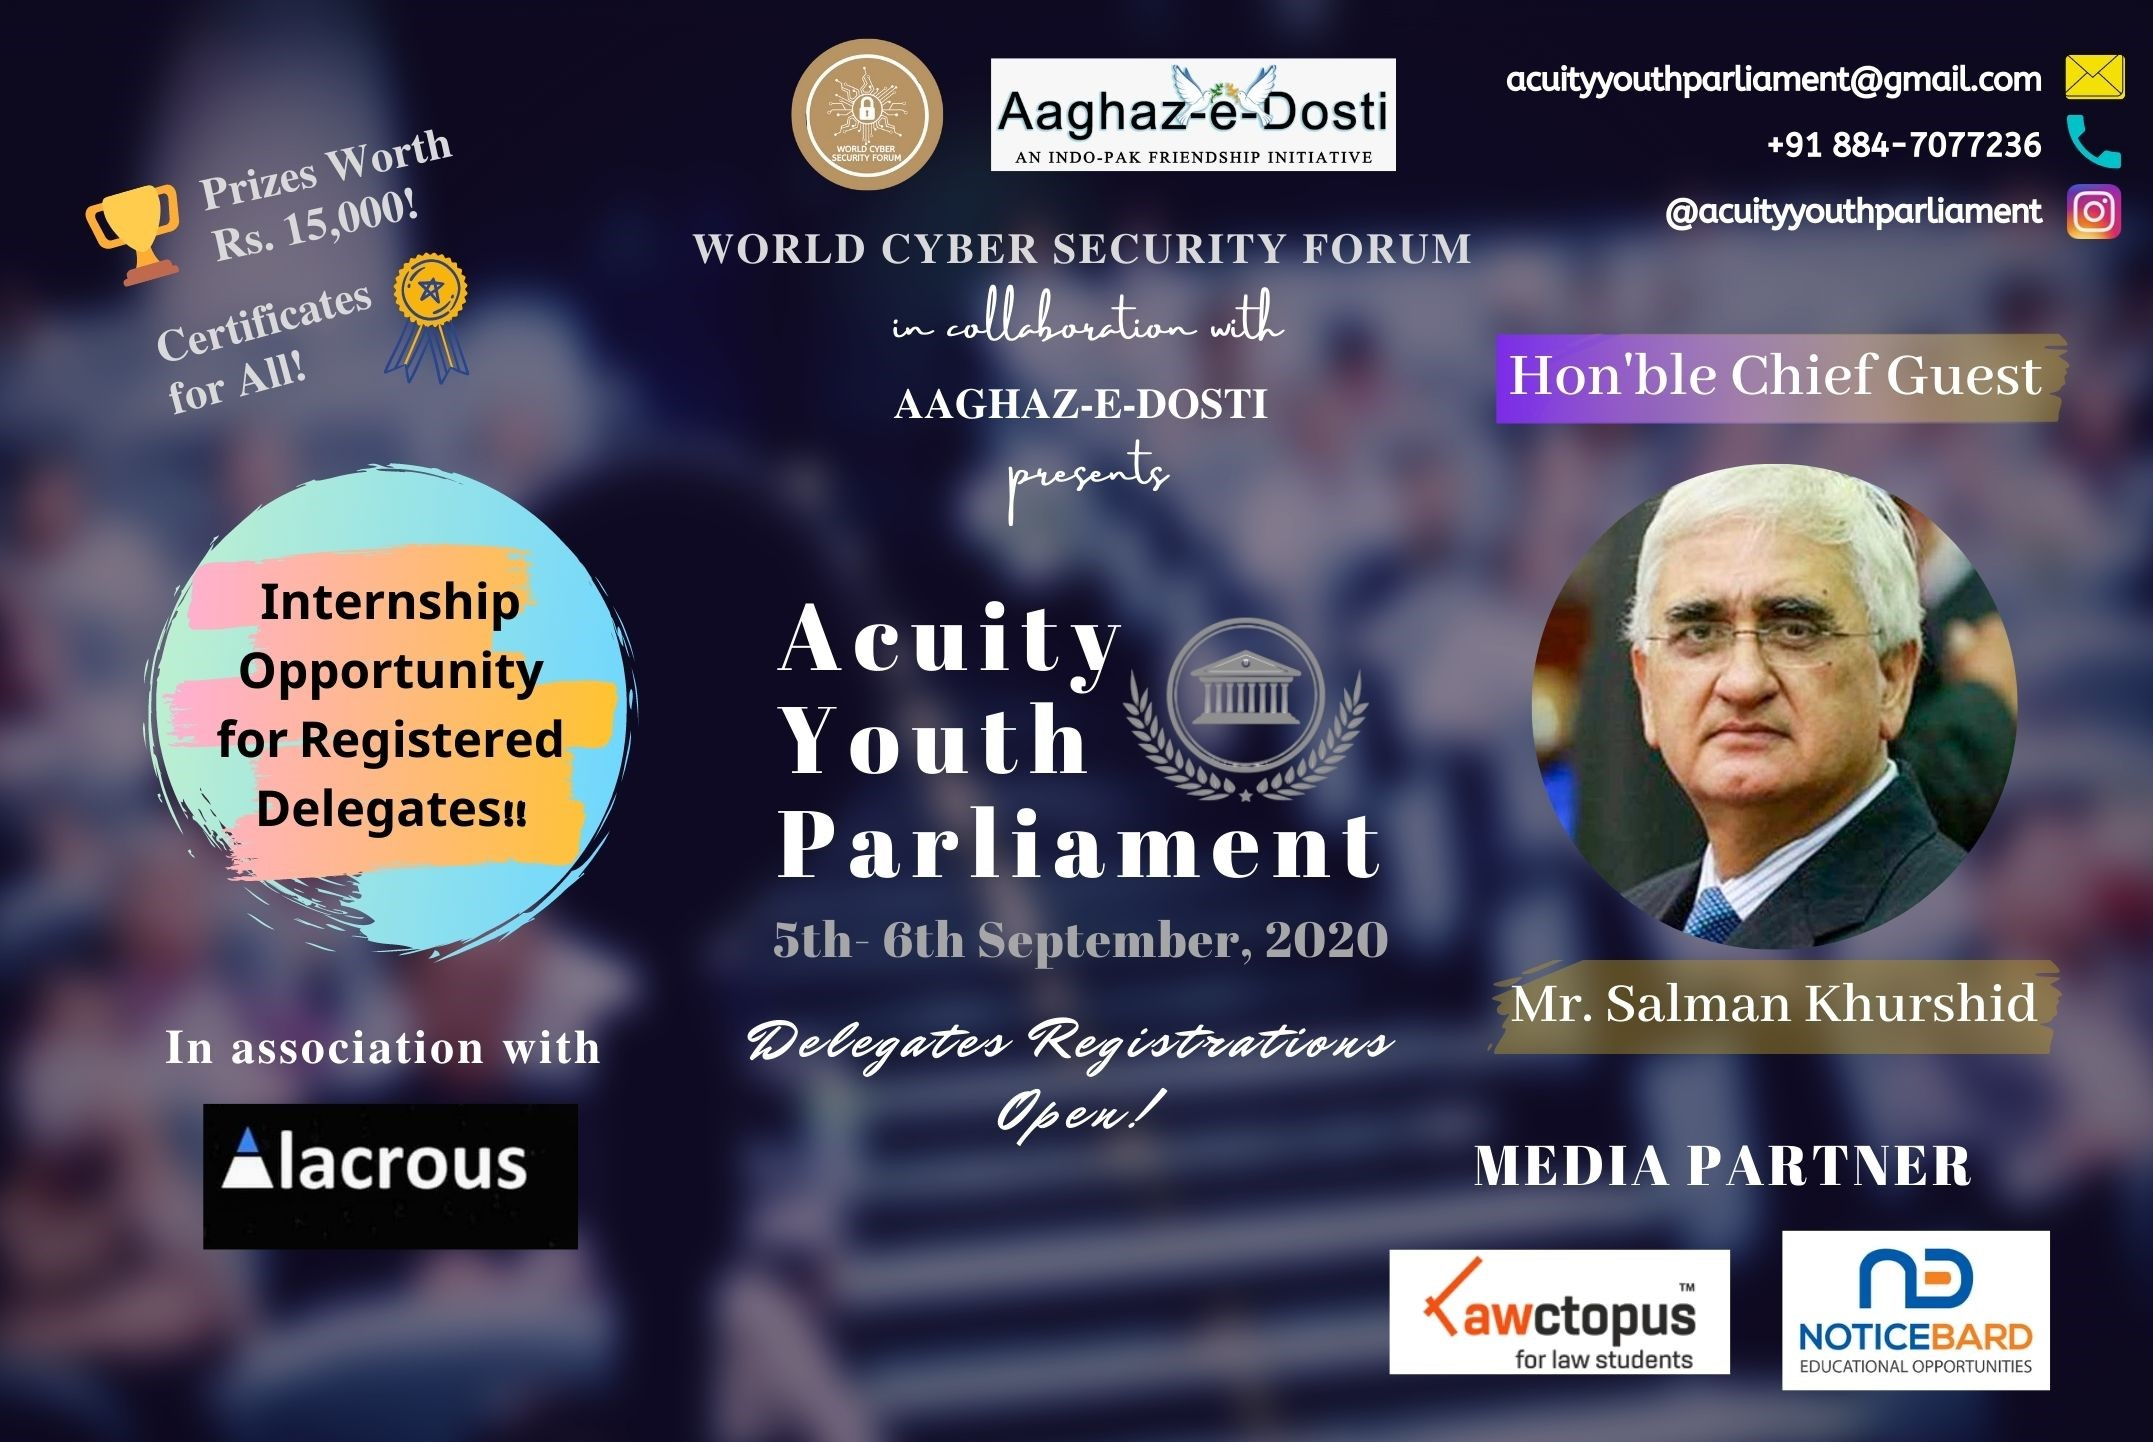 World Cyber Security Forum's Online Acuity Youth Parliament 2020